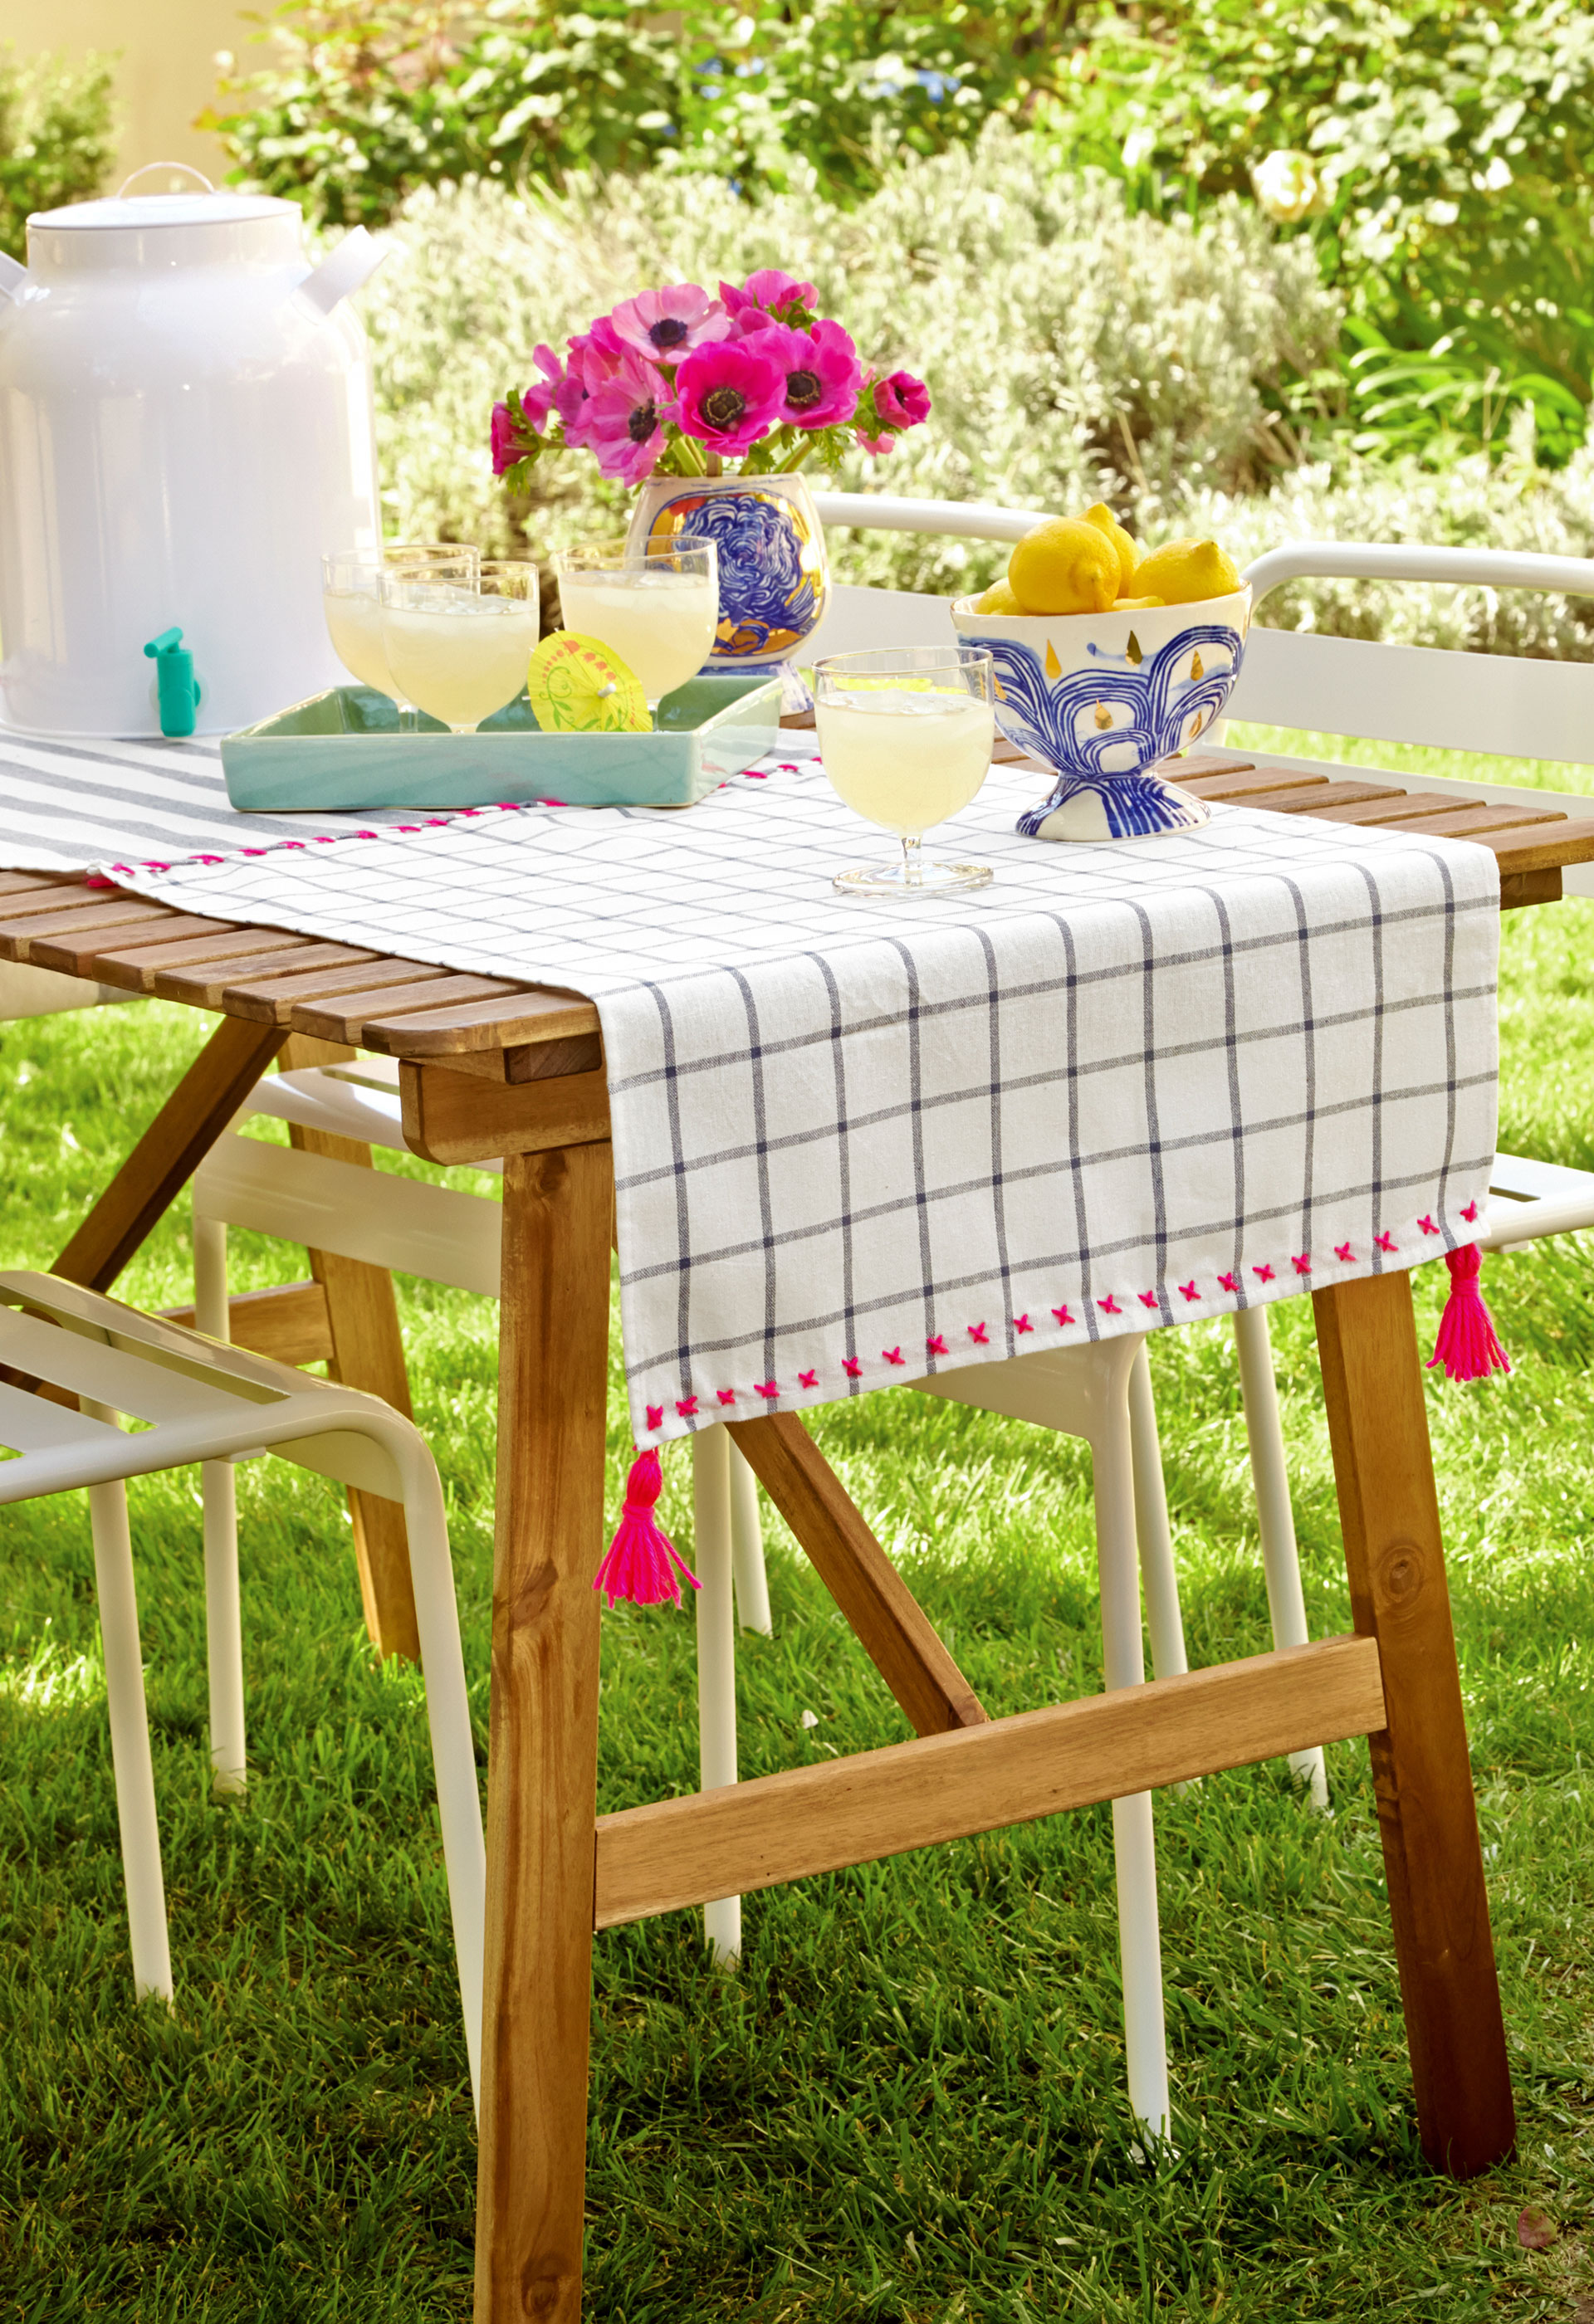 Easy diy table runner easy diy projects from emily henderson for Easy diy table runner